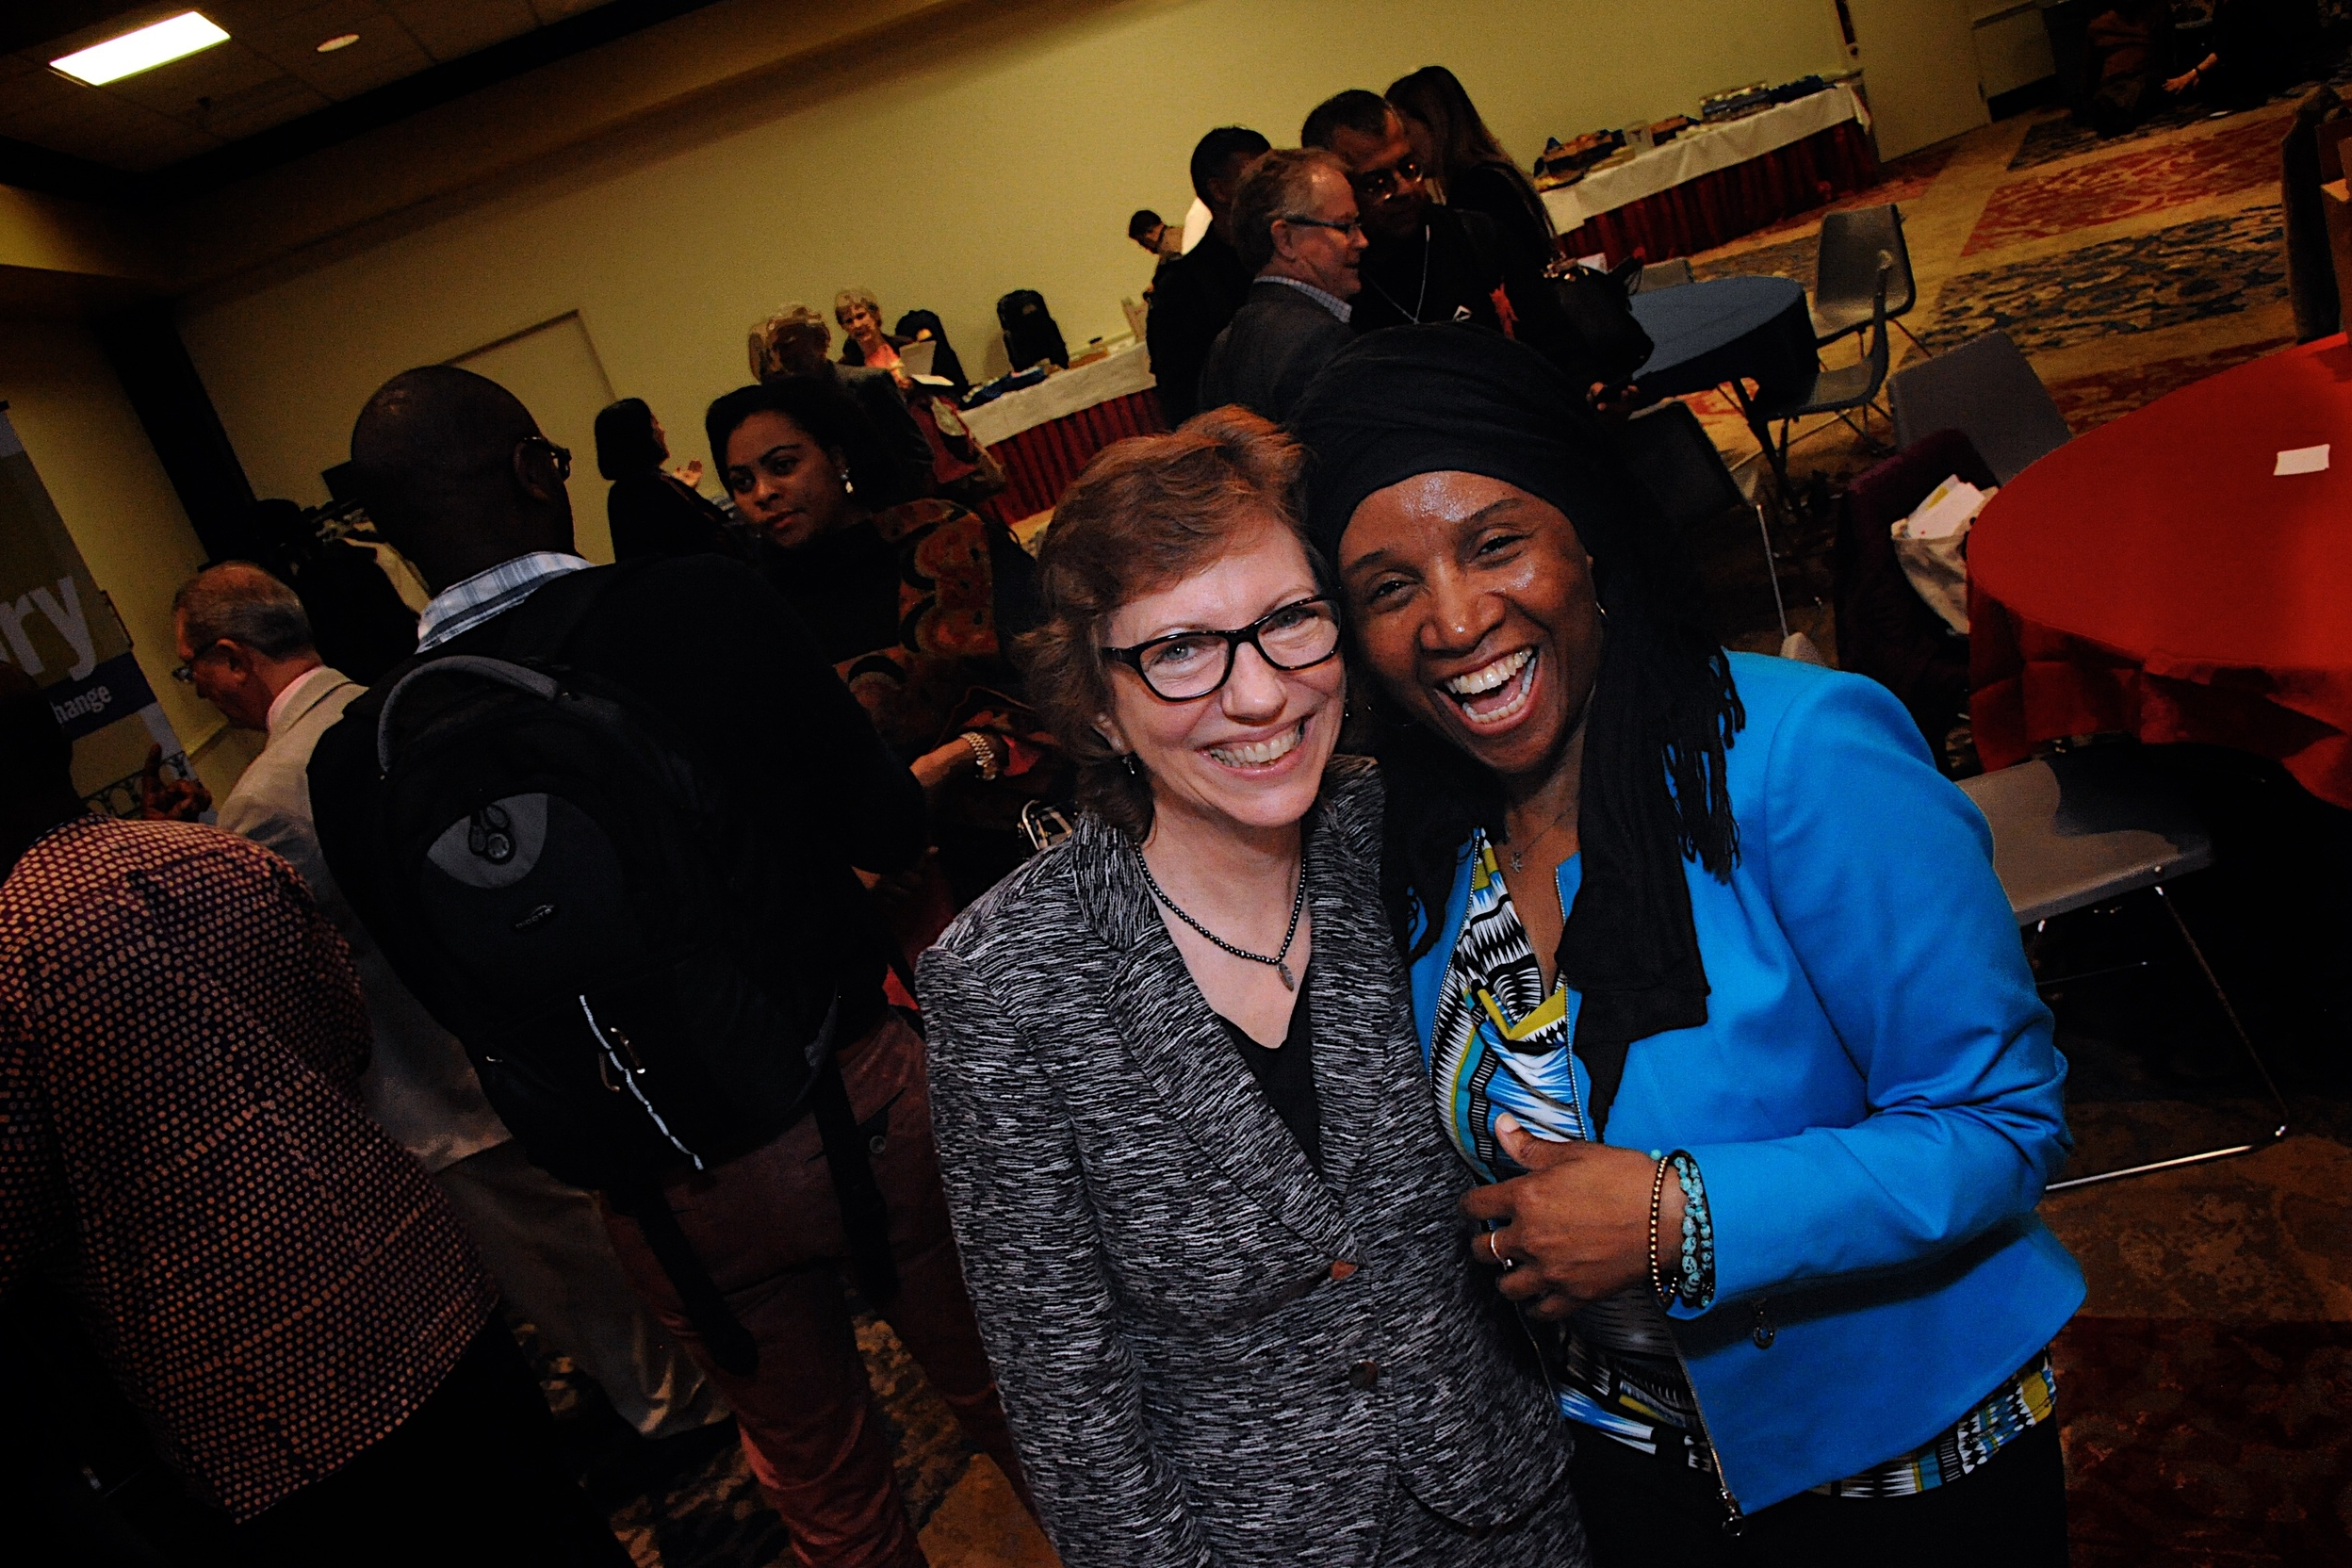 Martha McCoy, Executive Director, and Carolyne Abdullah, Director of Strengthening Democratic Capacity Team, with Everyday Democracy in Hartford, CT.